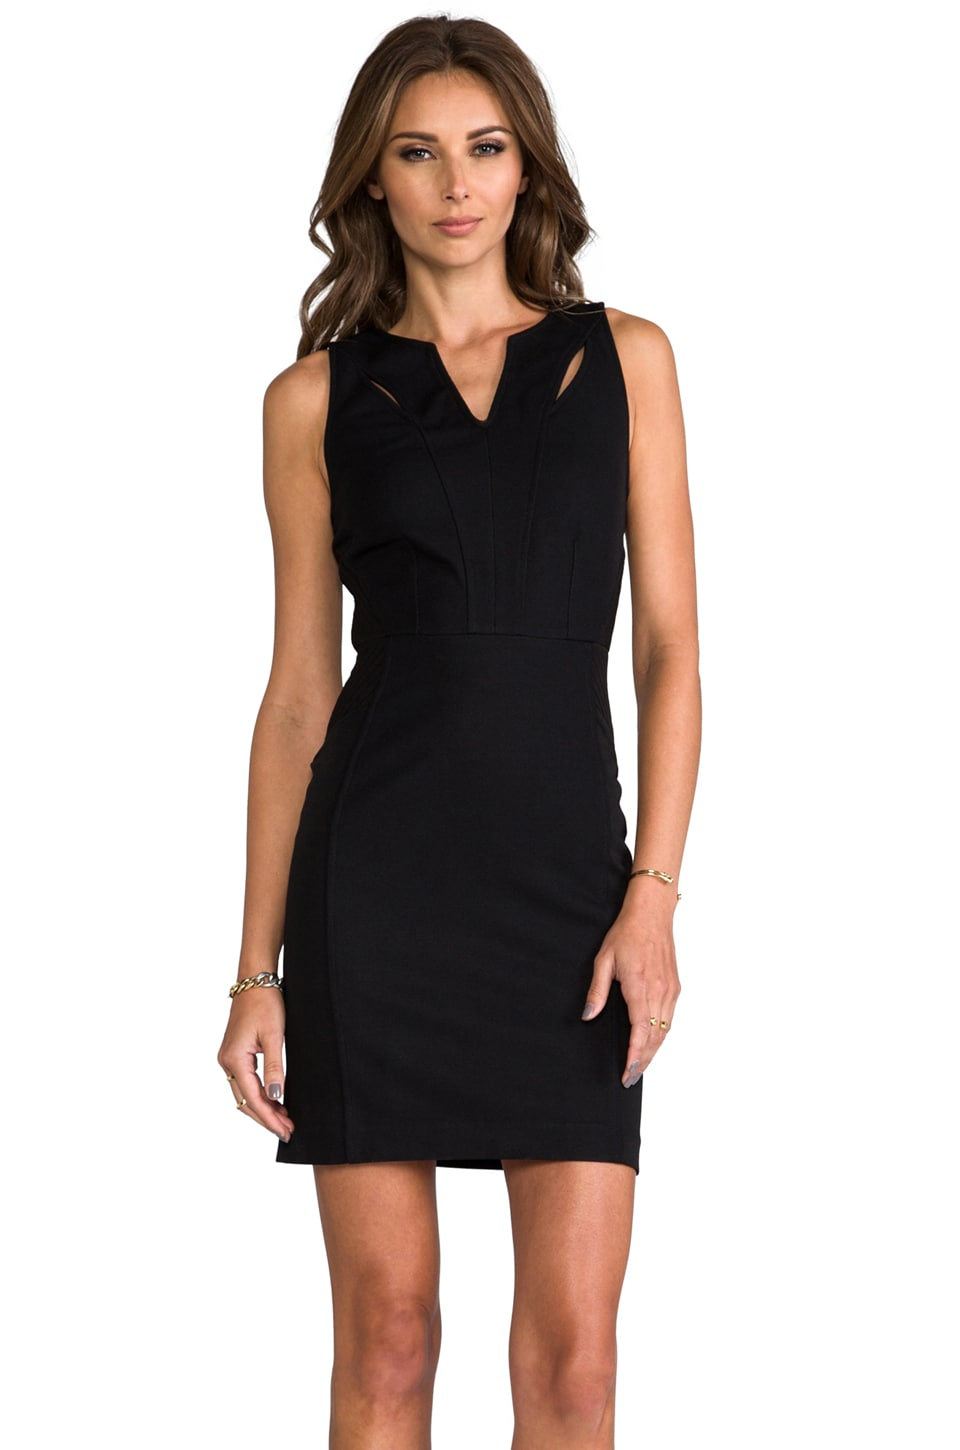 Greylin Victoria Cutout Dress in Black